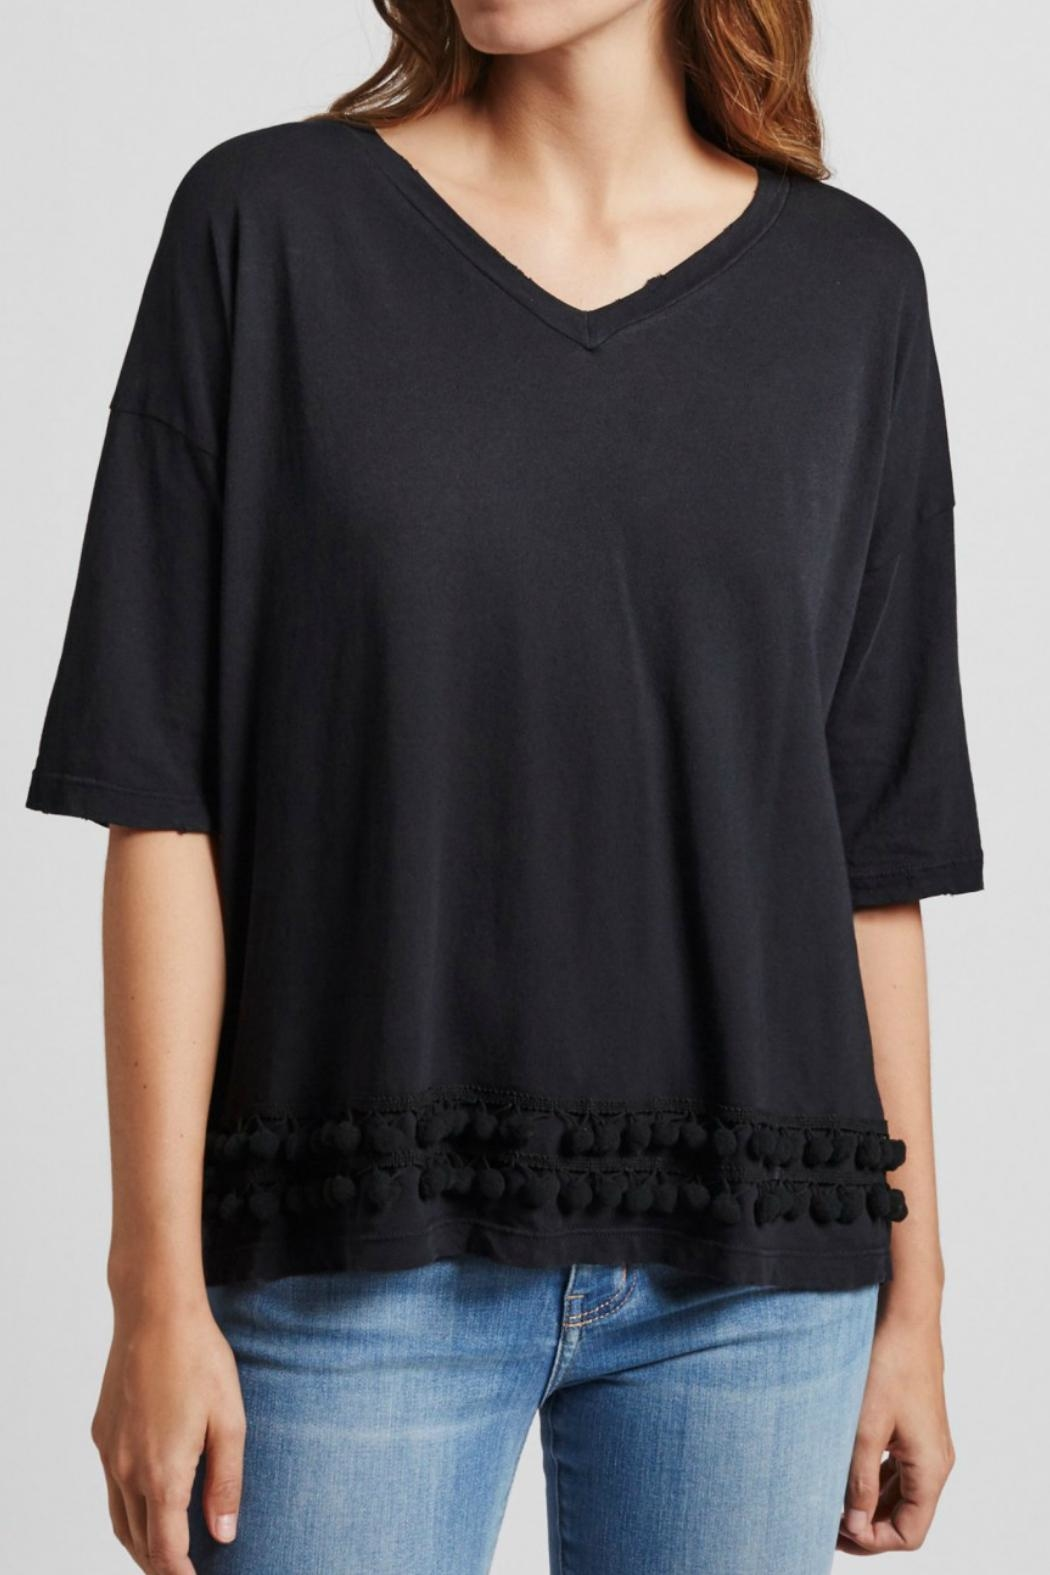 Current Elliott Pom Pom Tee Top - Side Cropped Image